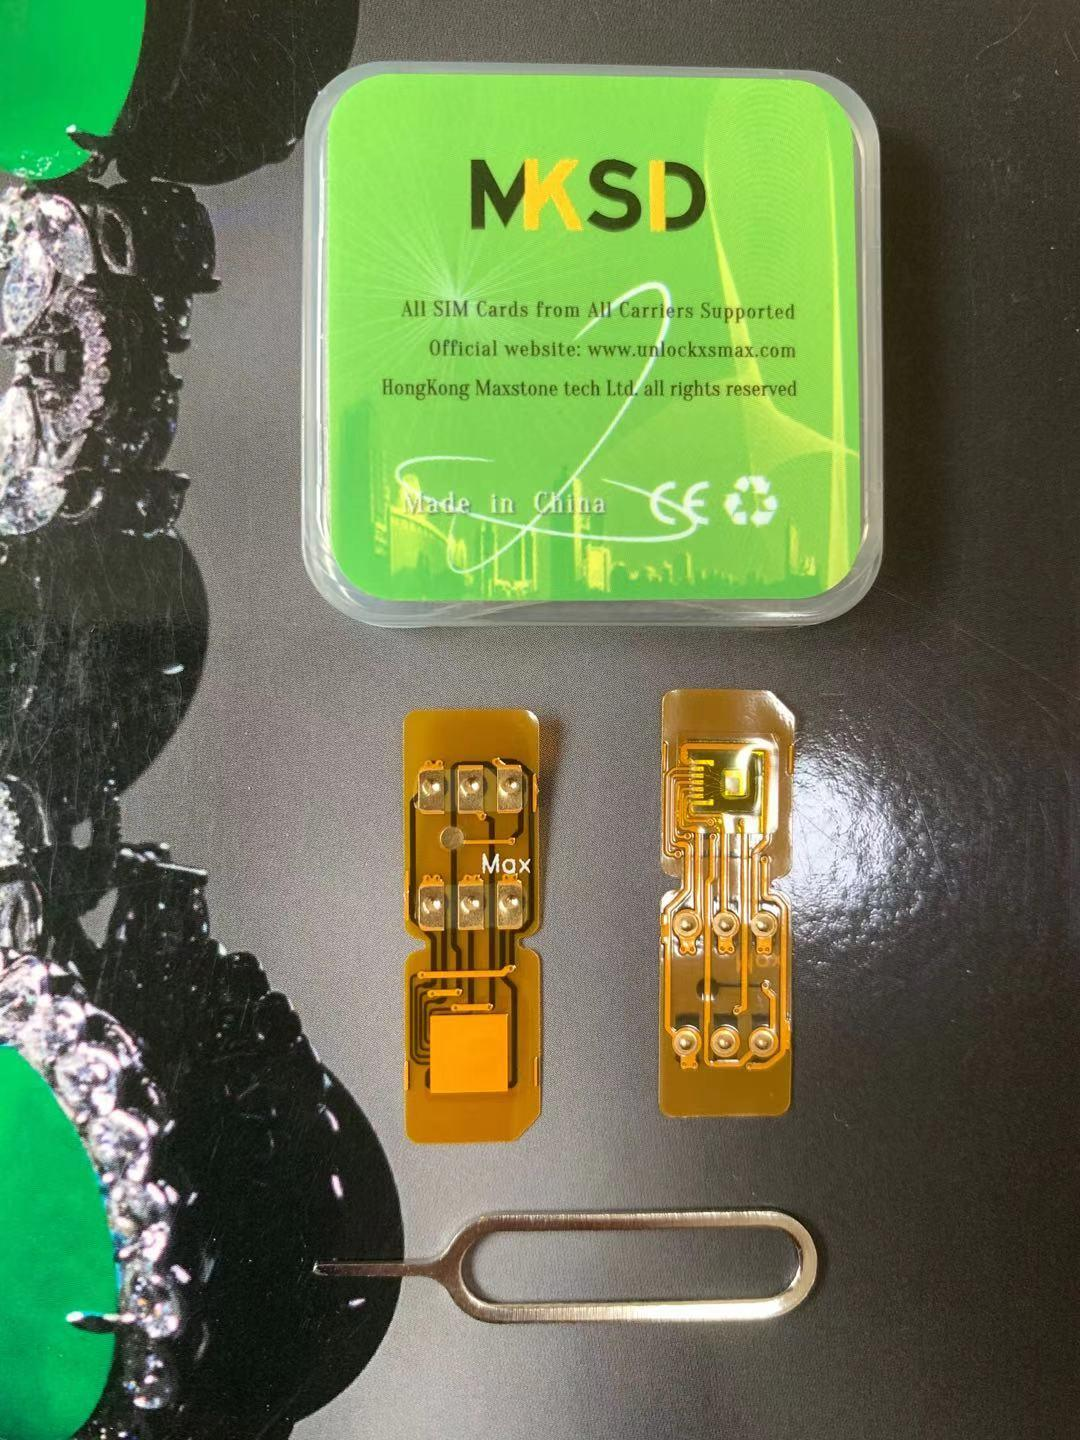 100pcs New MKSD4 gold SIM ICCID+MNC Auto Perfectly unlock Card for IOS 13.4 iPhone1112 PRO MAX XS  XR JAPAN AFRICA KOREA UK US enlarge